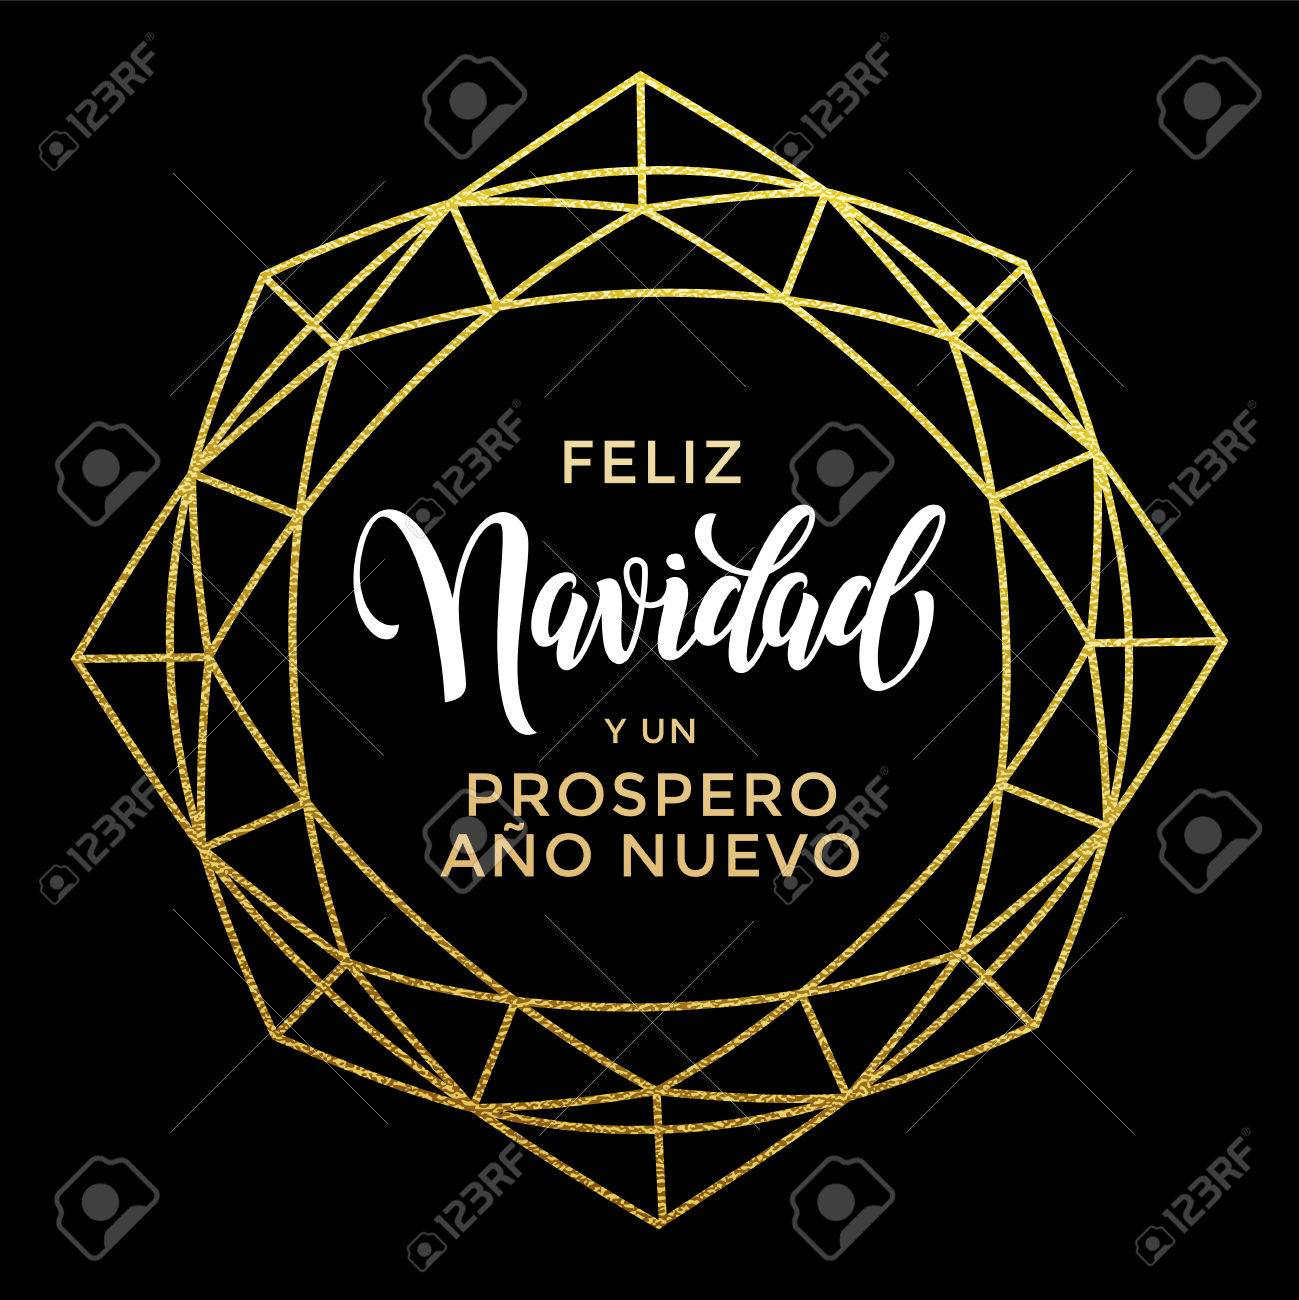 Feliz Navidad Y Prospero Ano Nuevo Luxury Gold Greeting Card. Spanish Merry  Christmas Card Vector